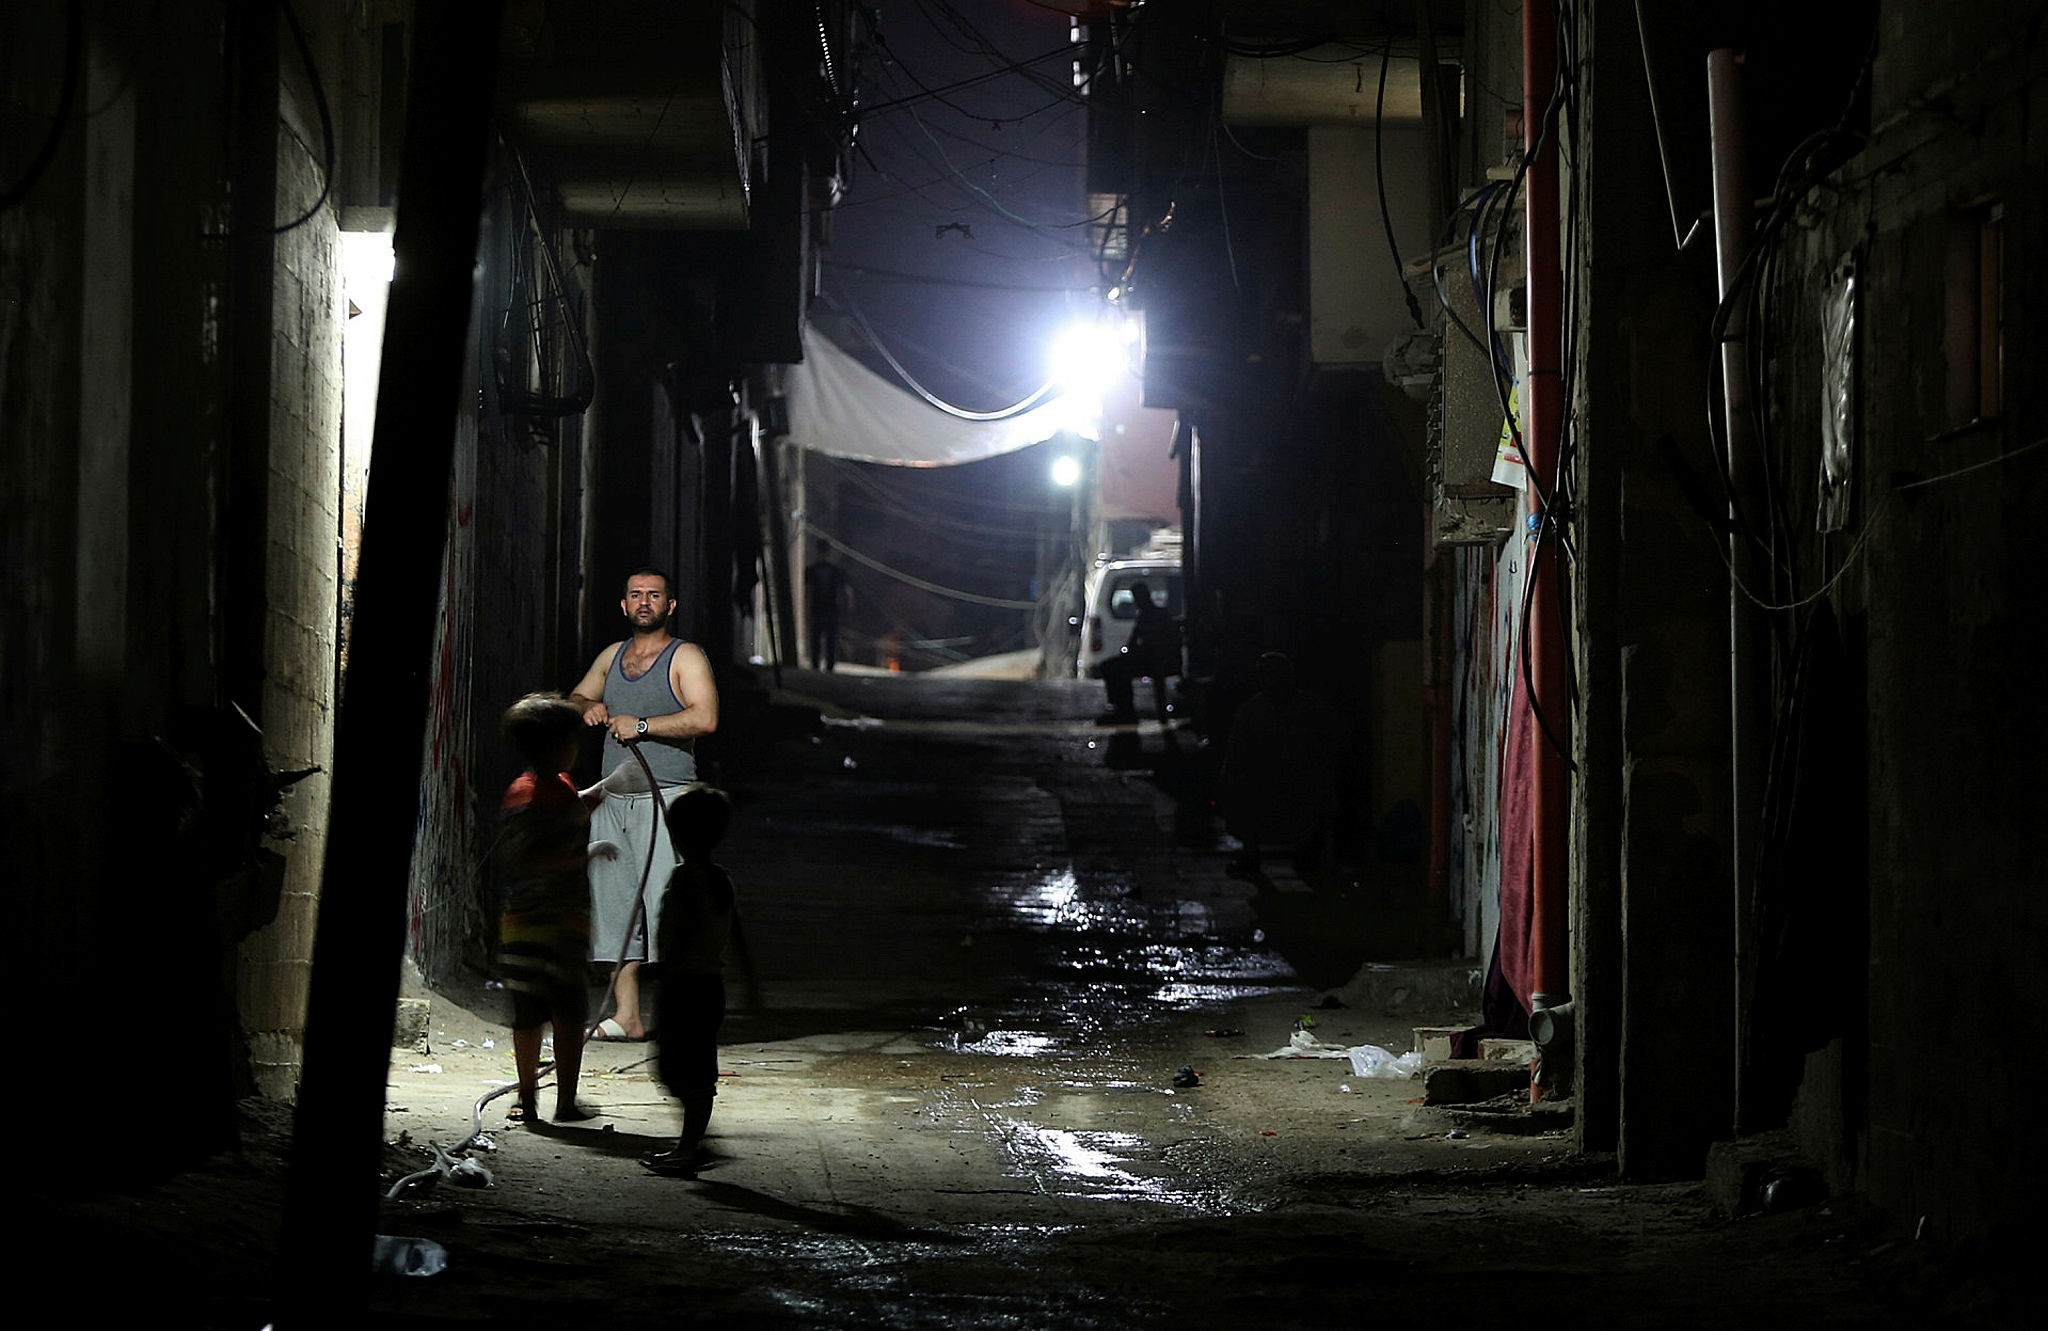 Palestinian refugees seen outside their houses during power outage at Al Shateaa refugee camp in the West Gaza City, 17 July 2017. (EPA Photo)